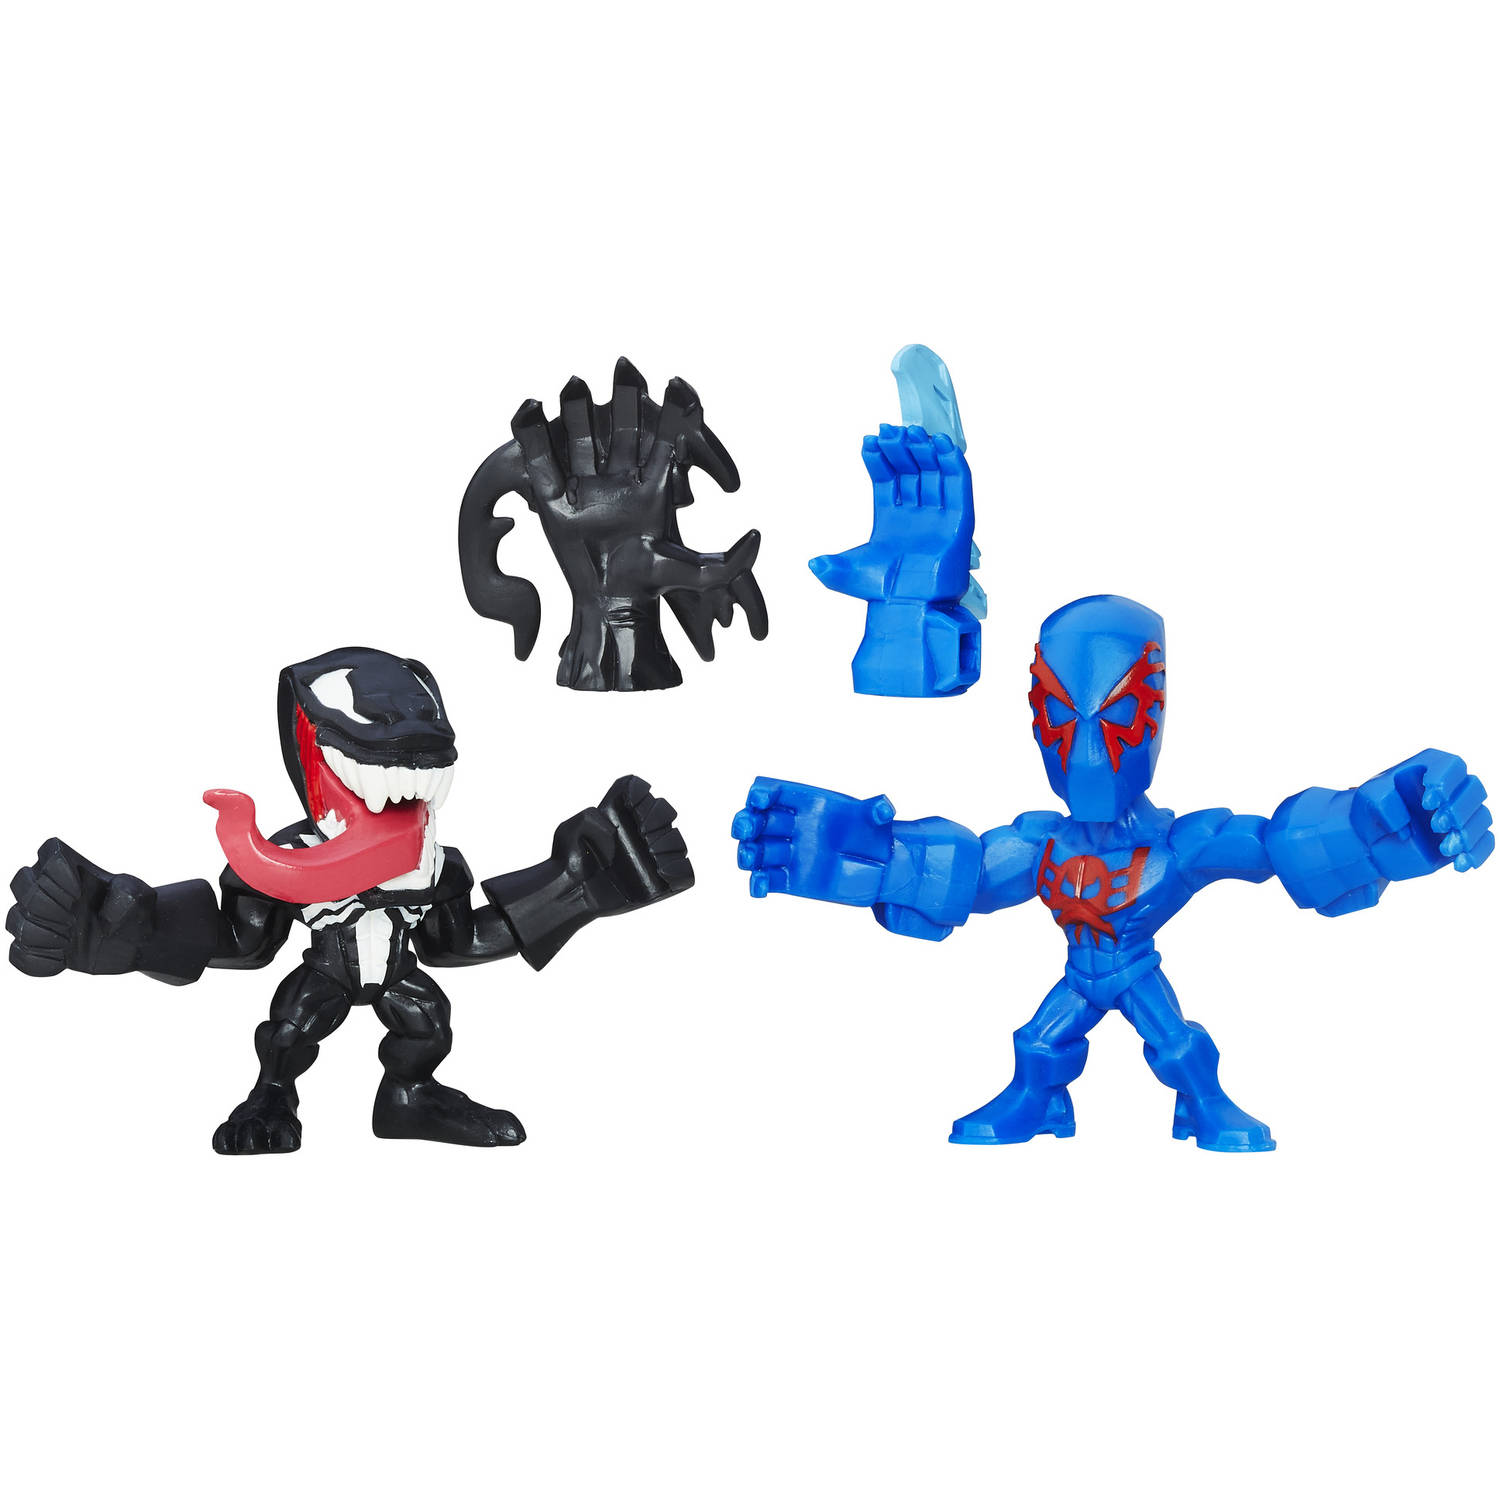 Marvel Super Hero Mashers Micro Spider-Man 2099 and Venom Action Figures, 2 Pack